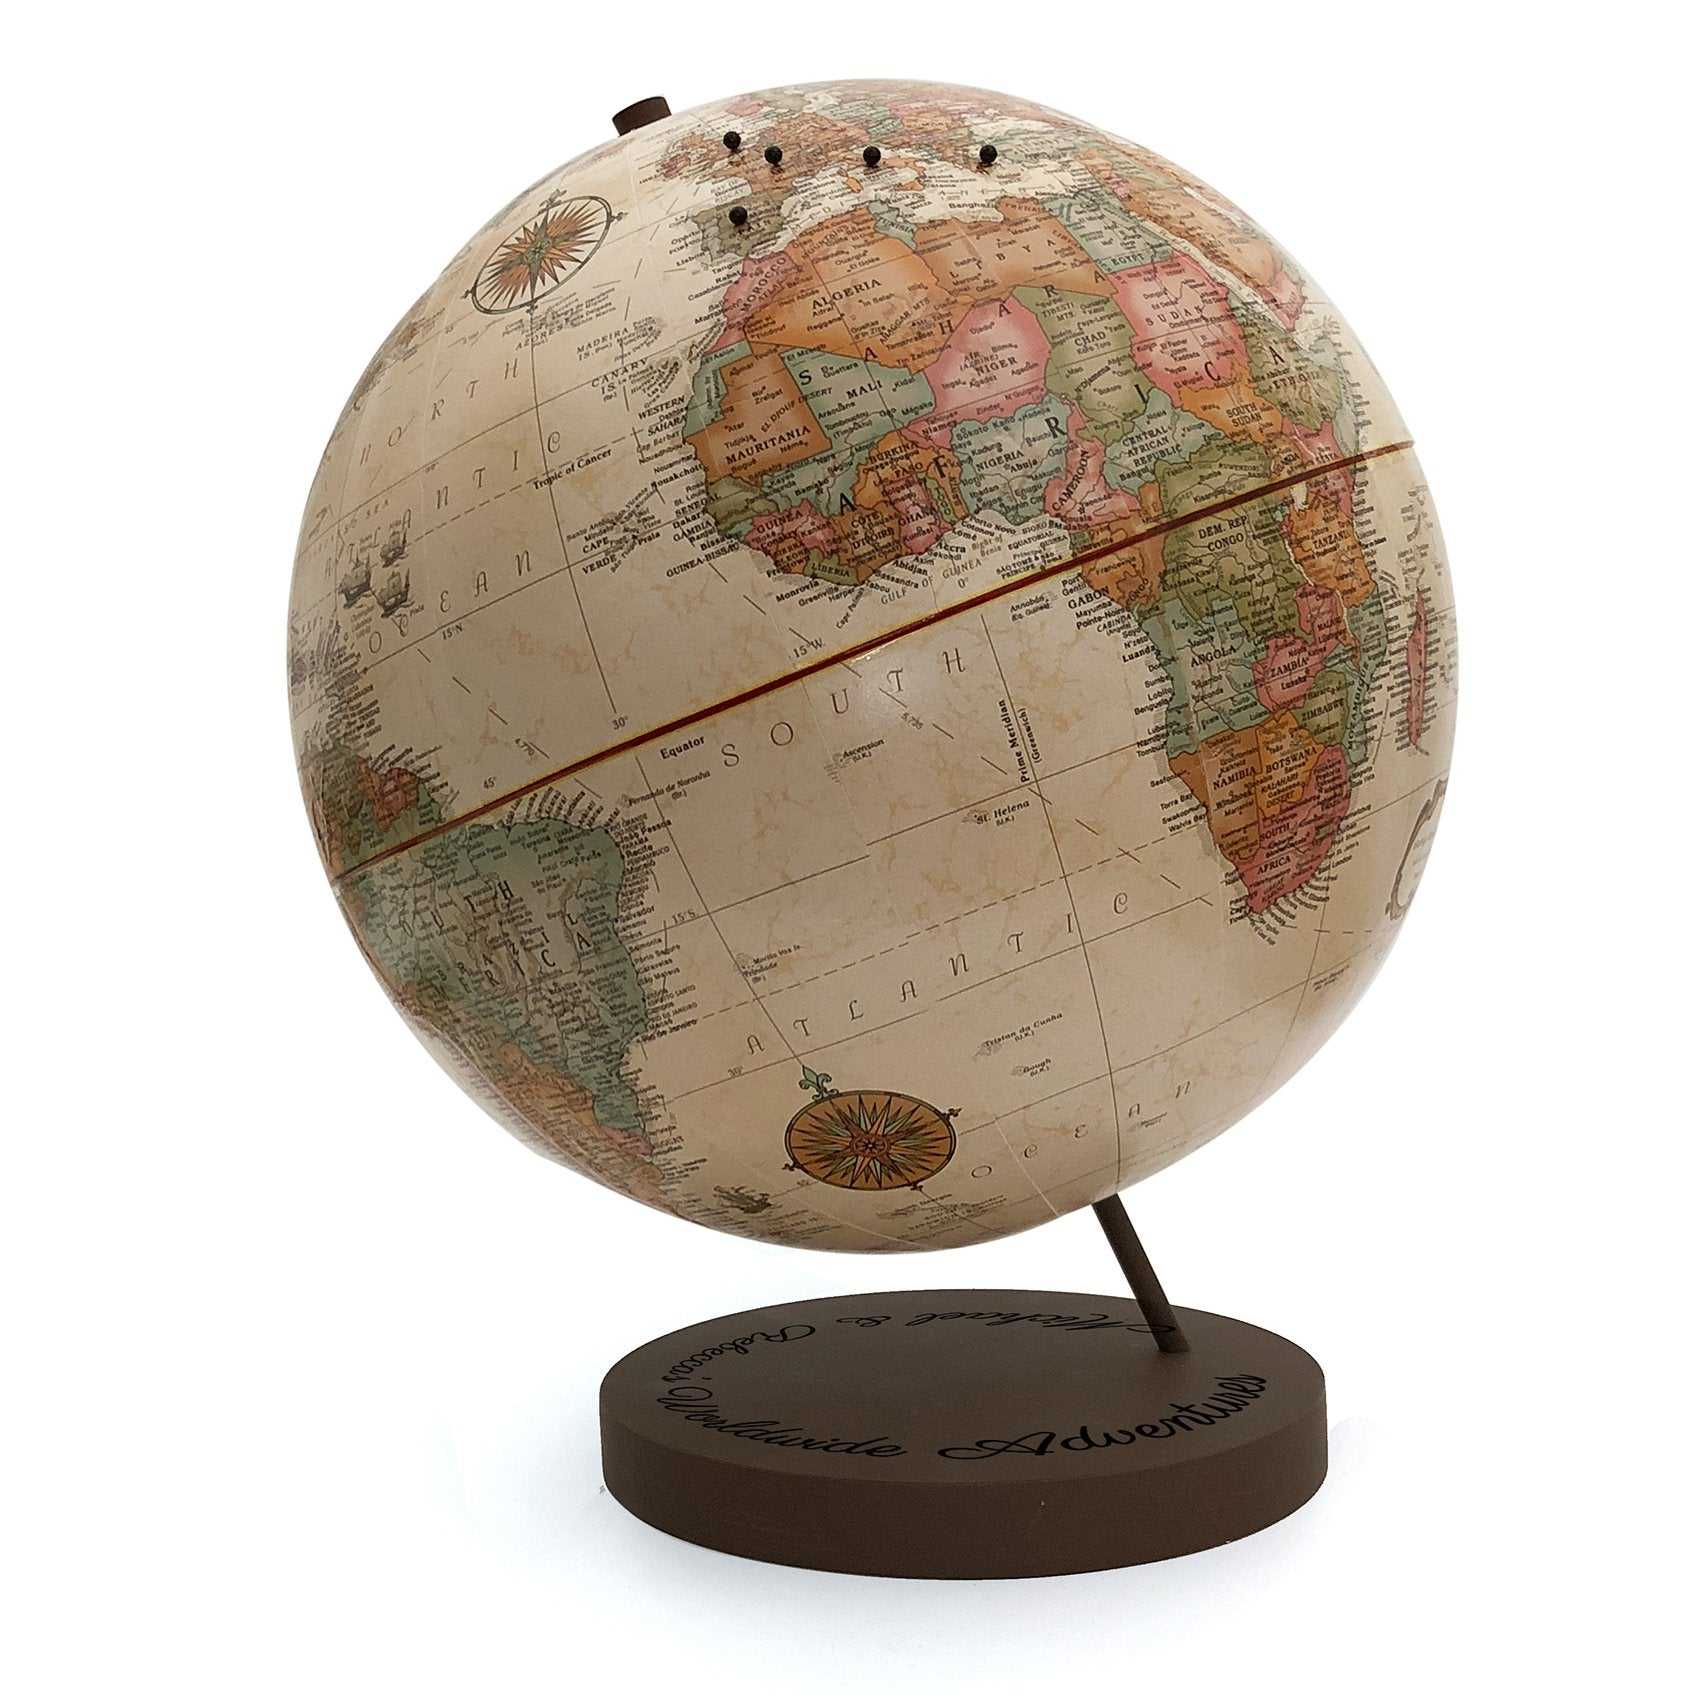 Custom Engraved Worldwide Adventures Push Pin Globe by Wendy Gold